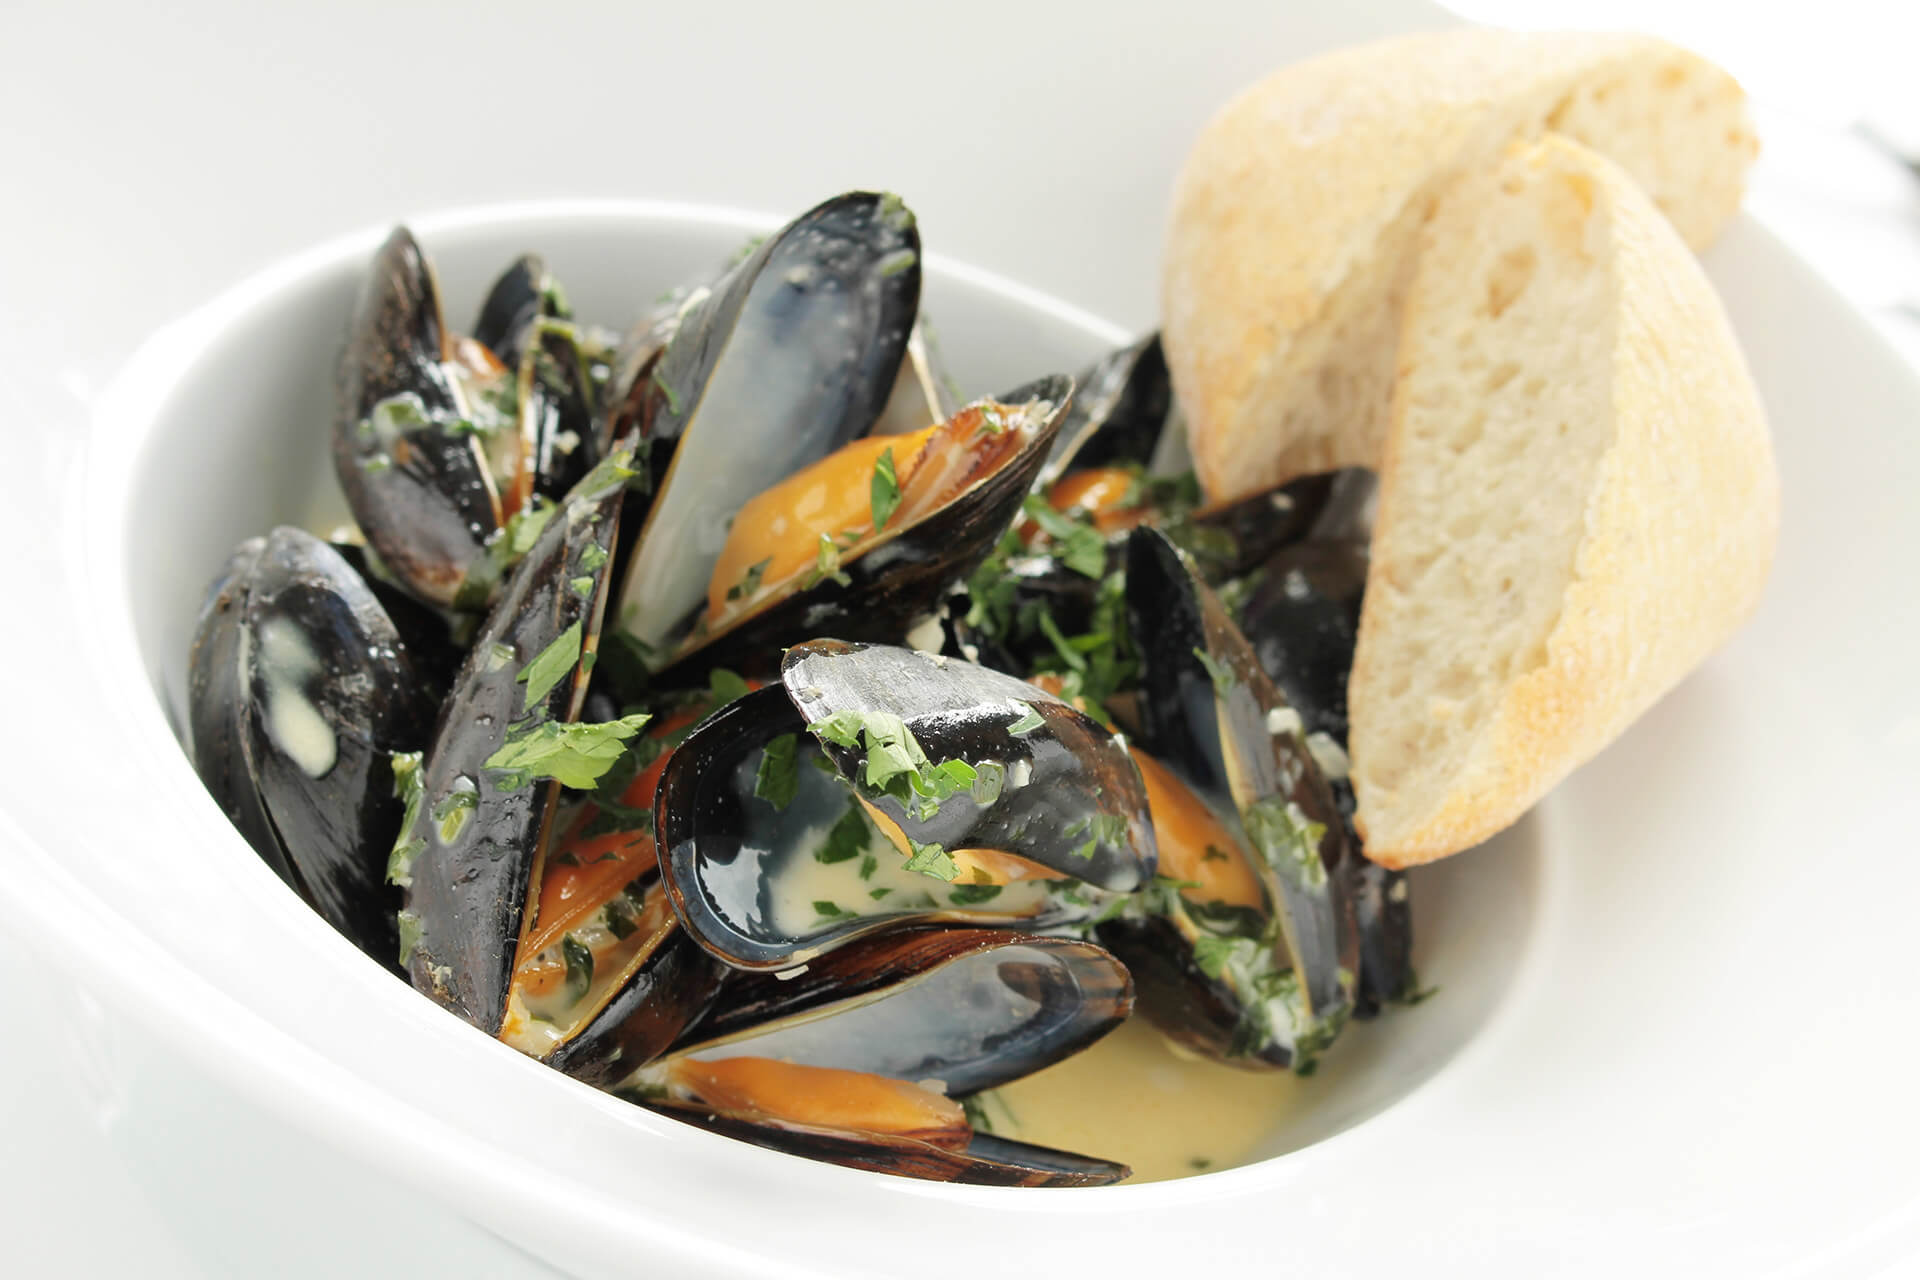 Green Lipped mussels broiled in white wine with garlic and herbs.